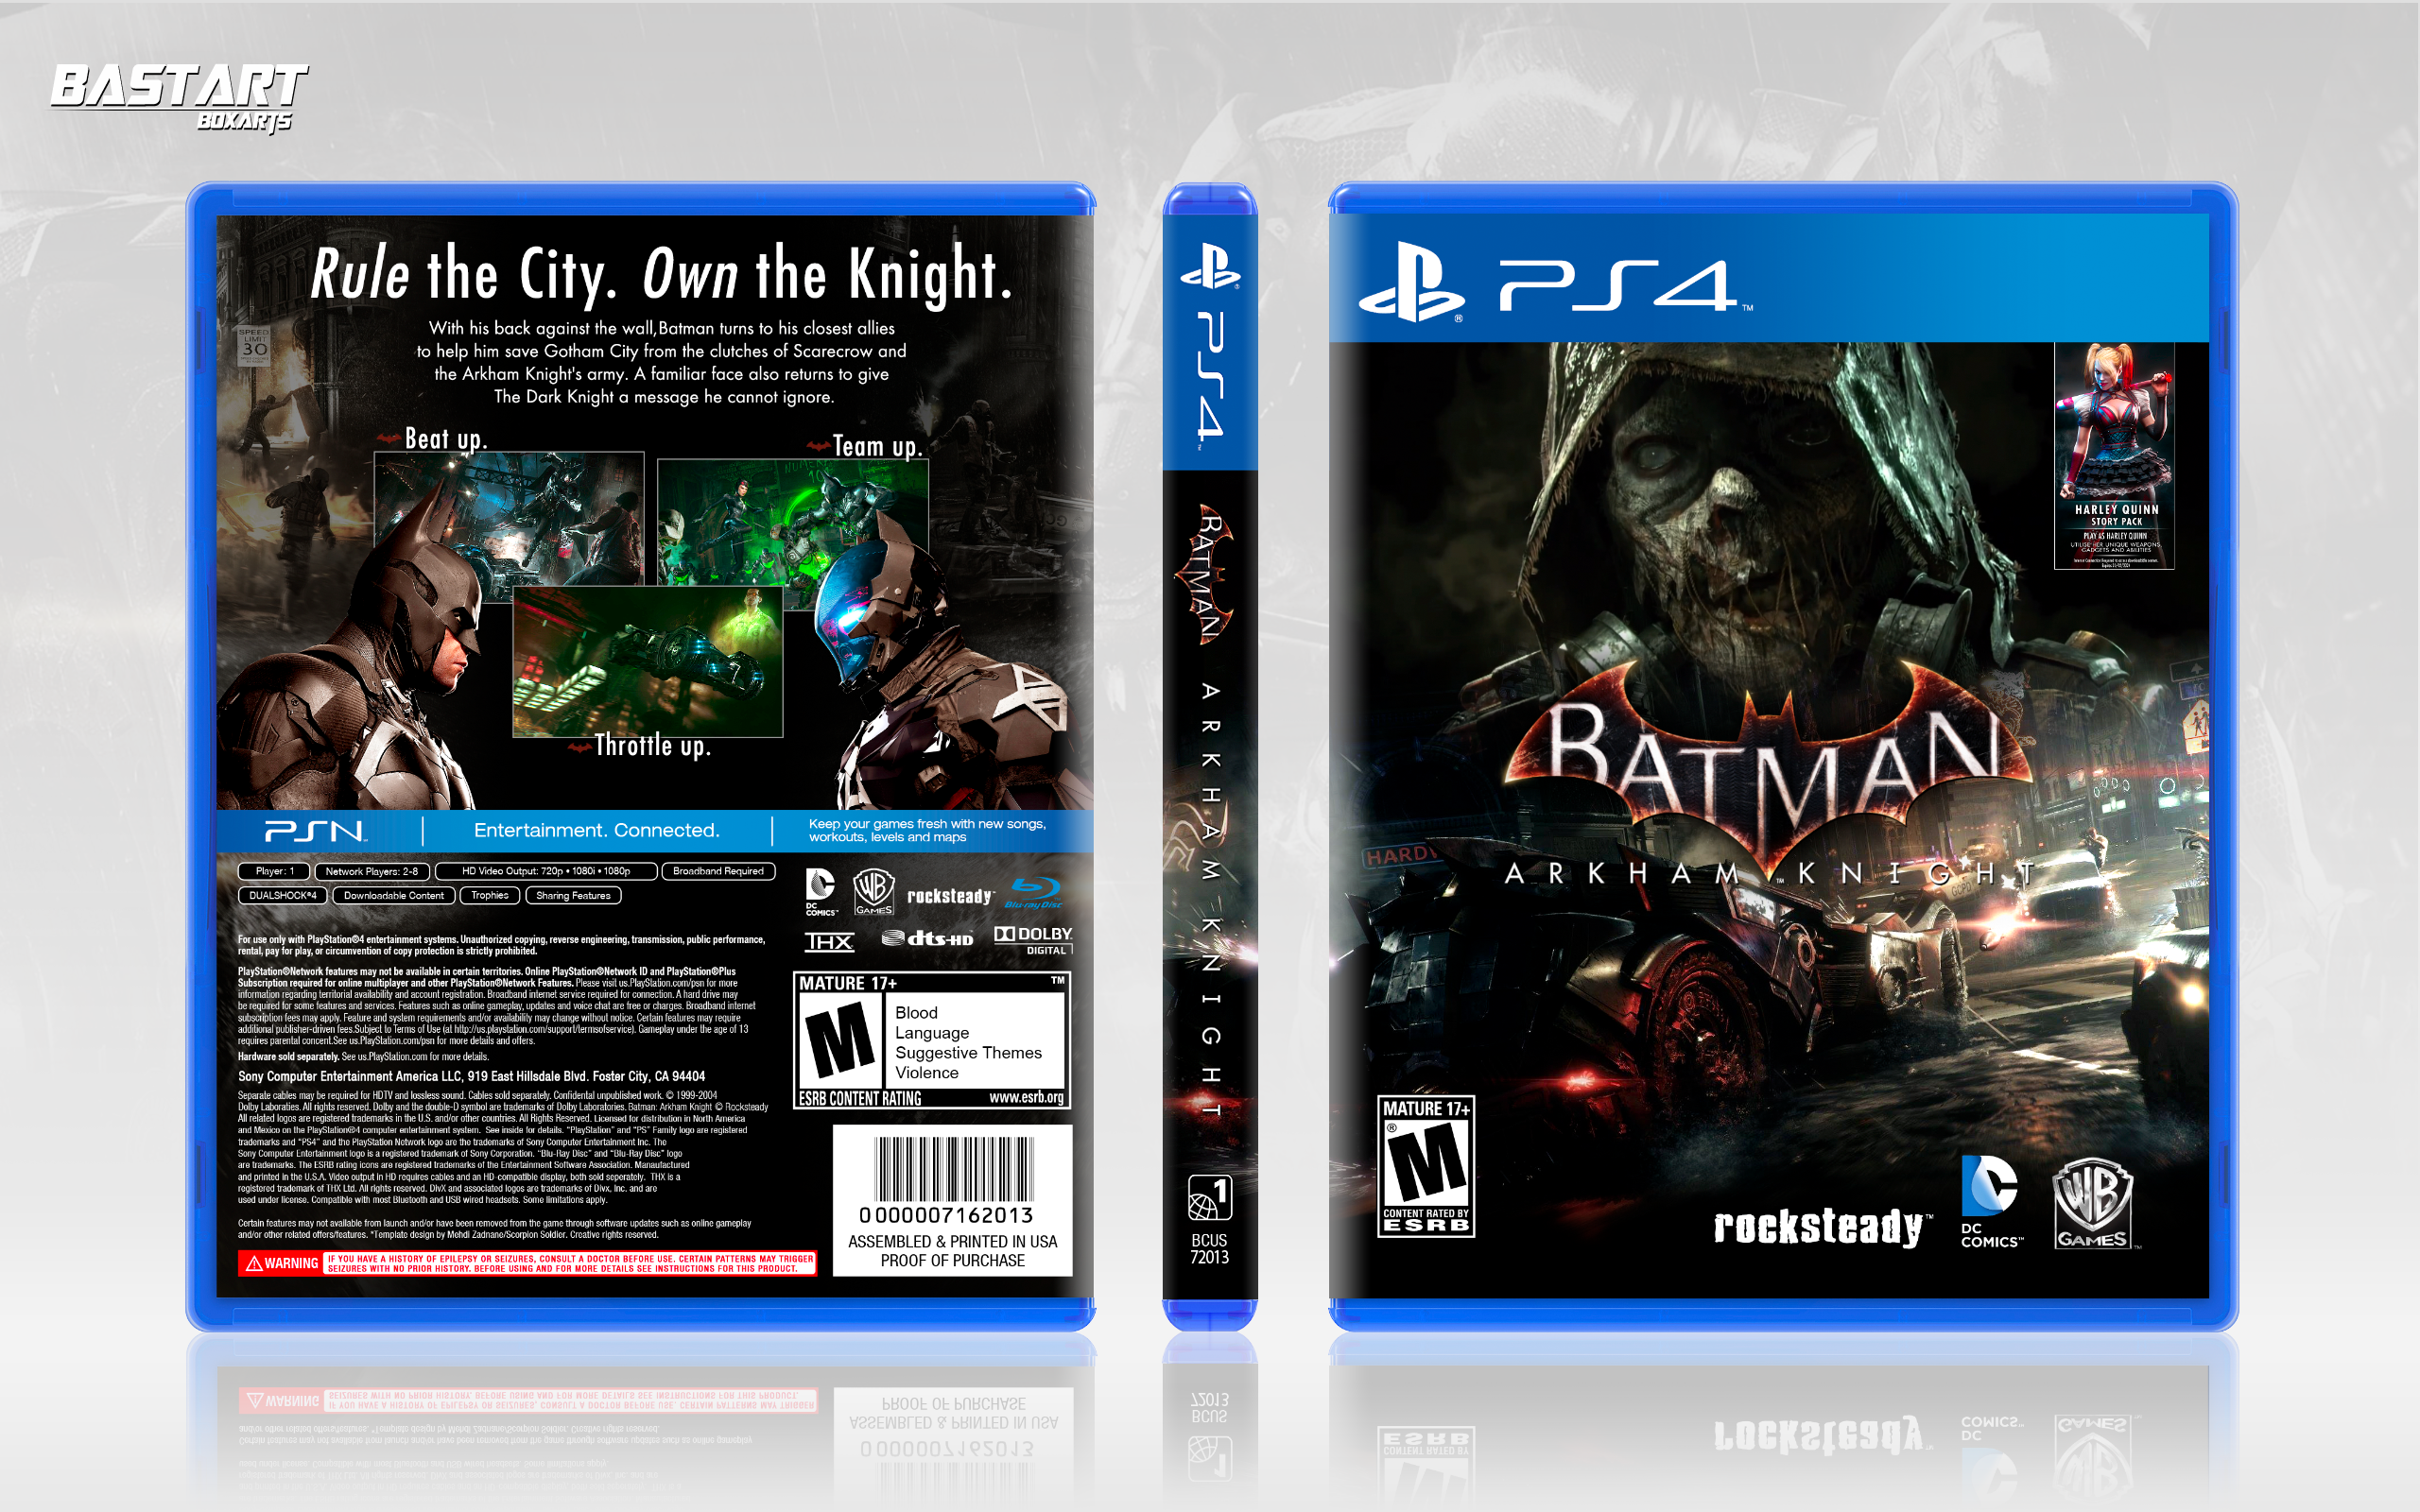 batman arkham knight playstation 4 box art cover by bastart